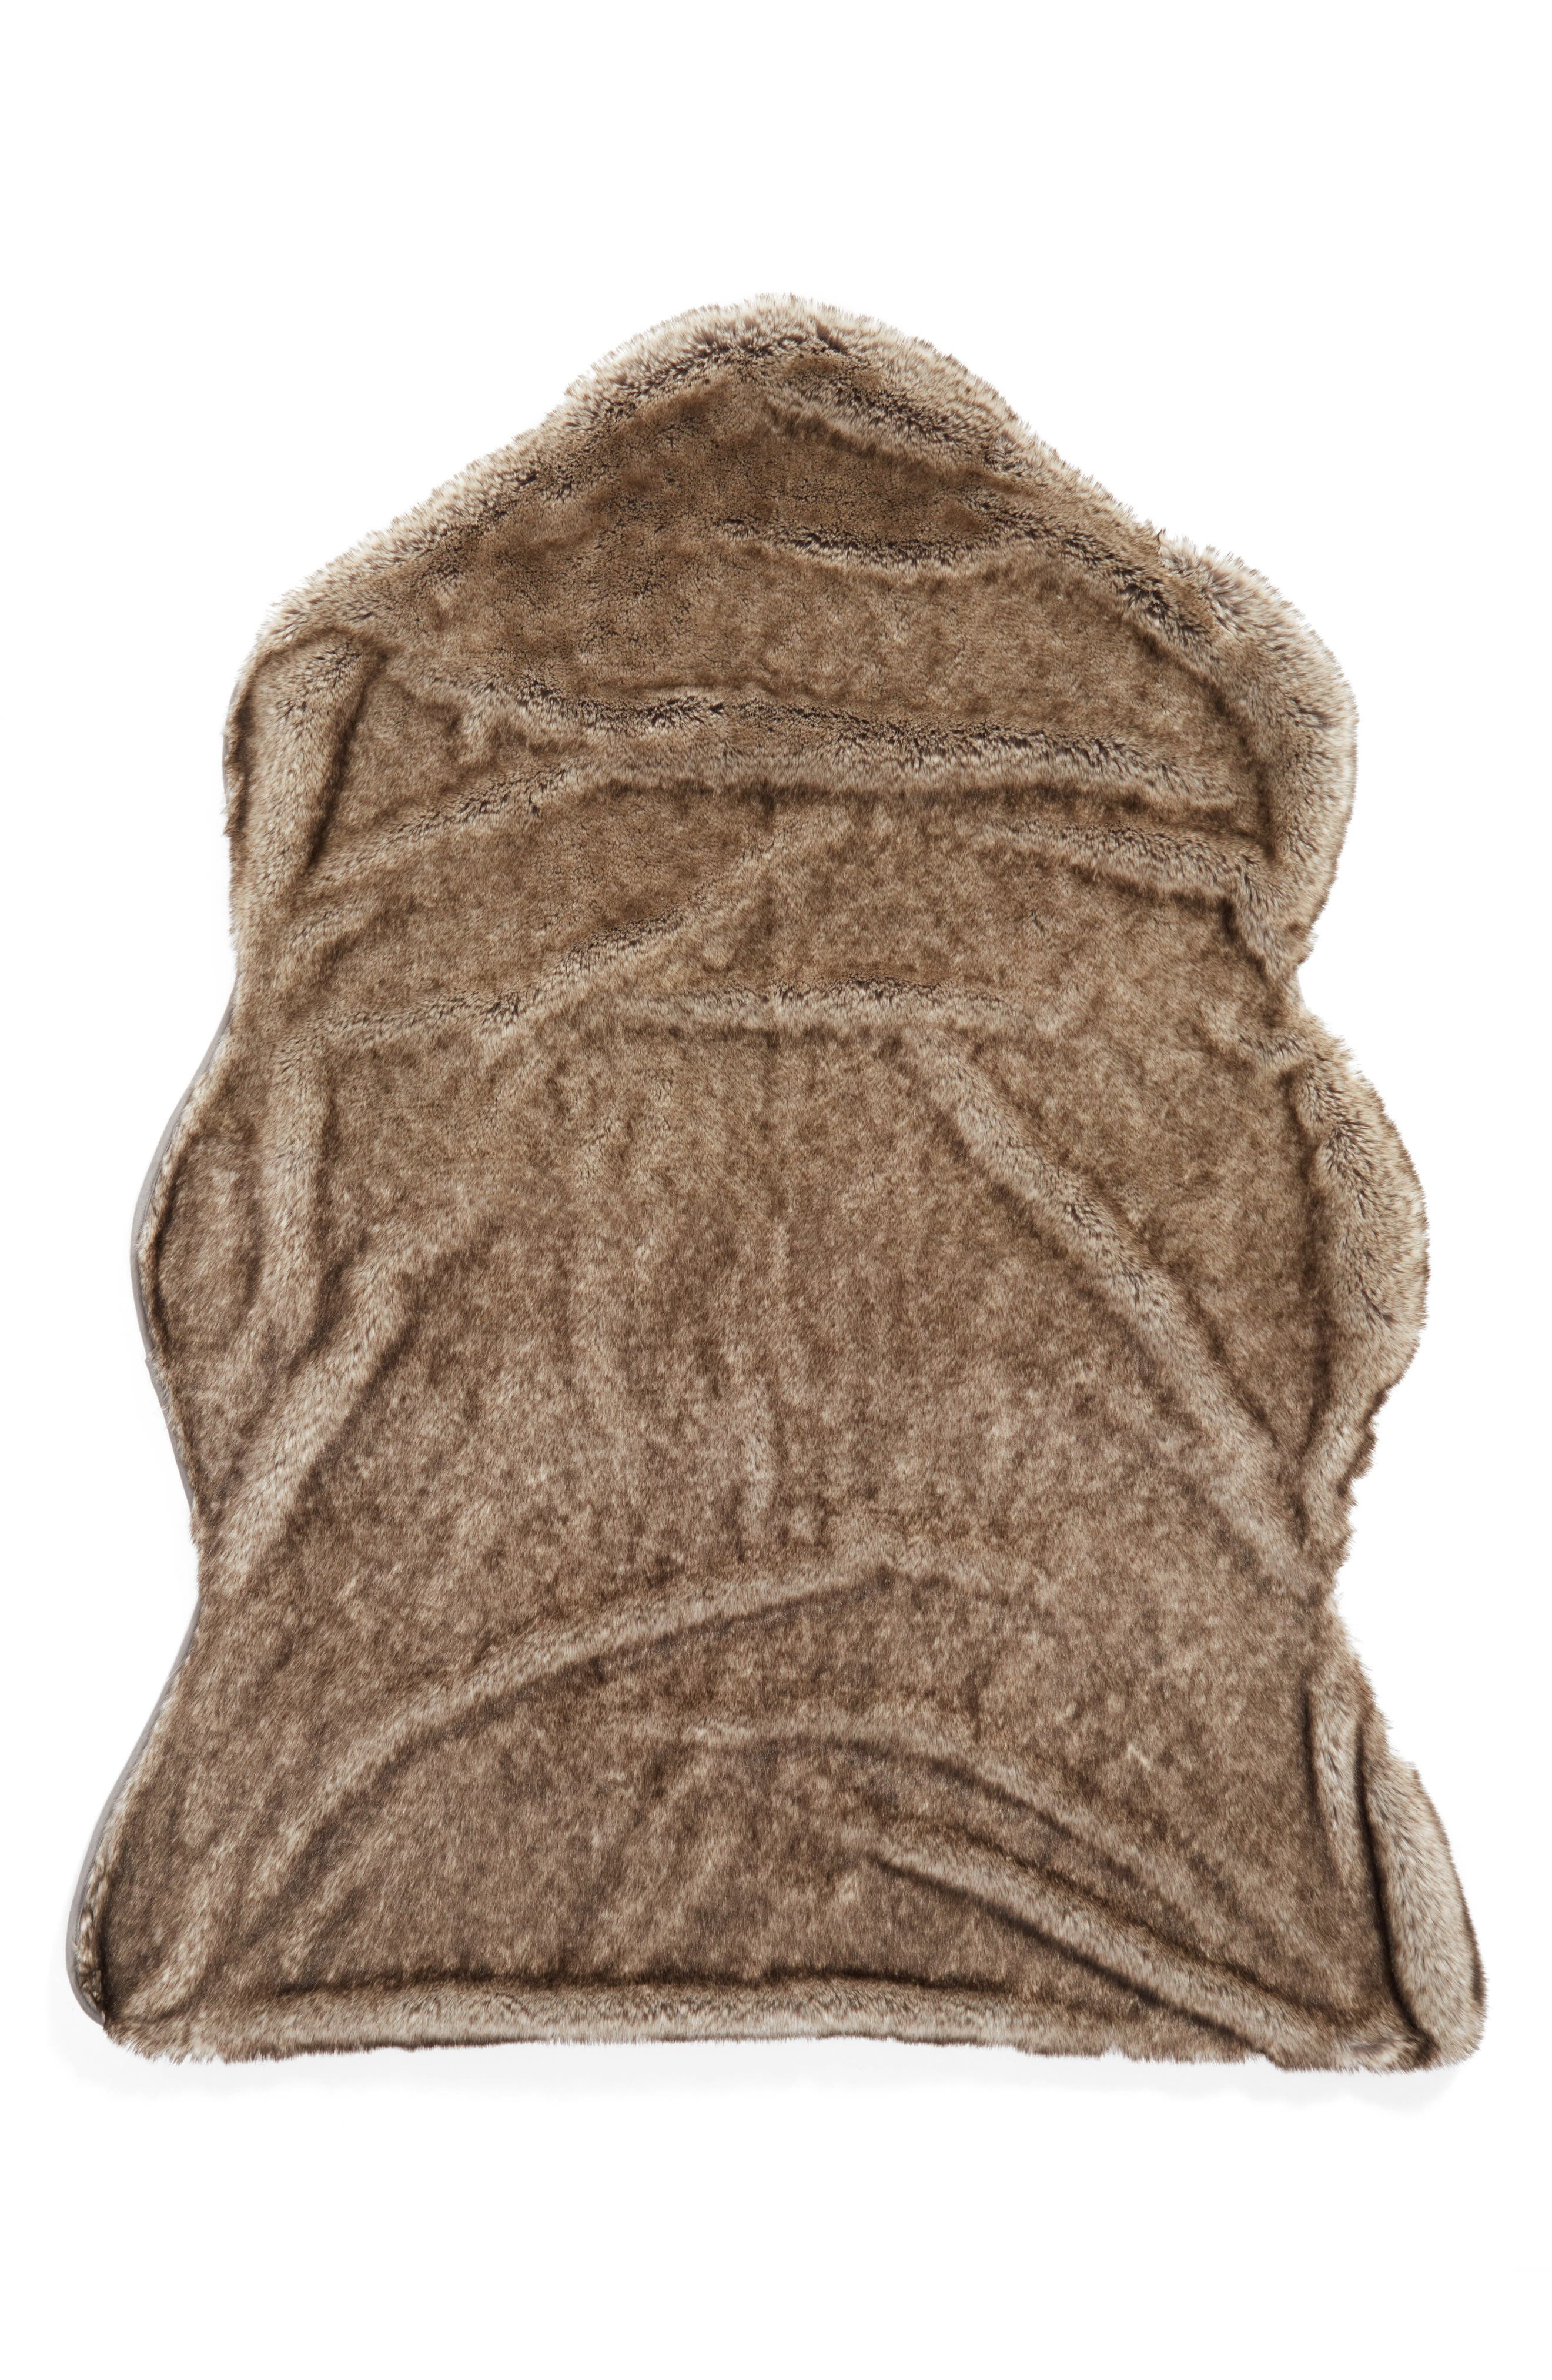 Cuddle Up Faux Fur Shaped Rug,                         Main,                         color, New Natural Tipped